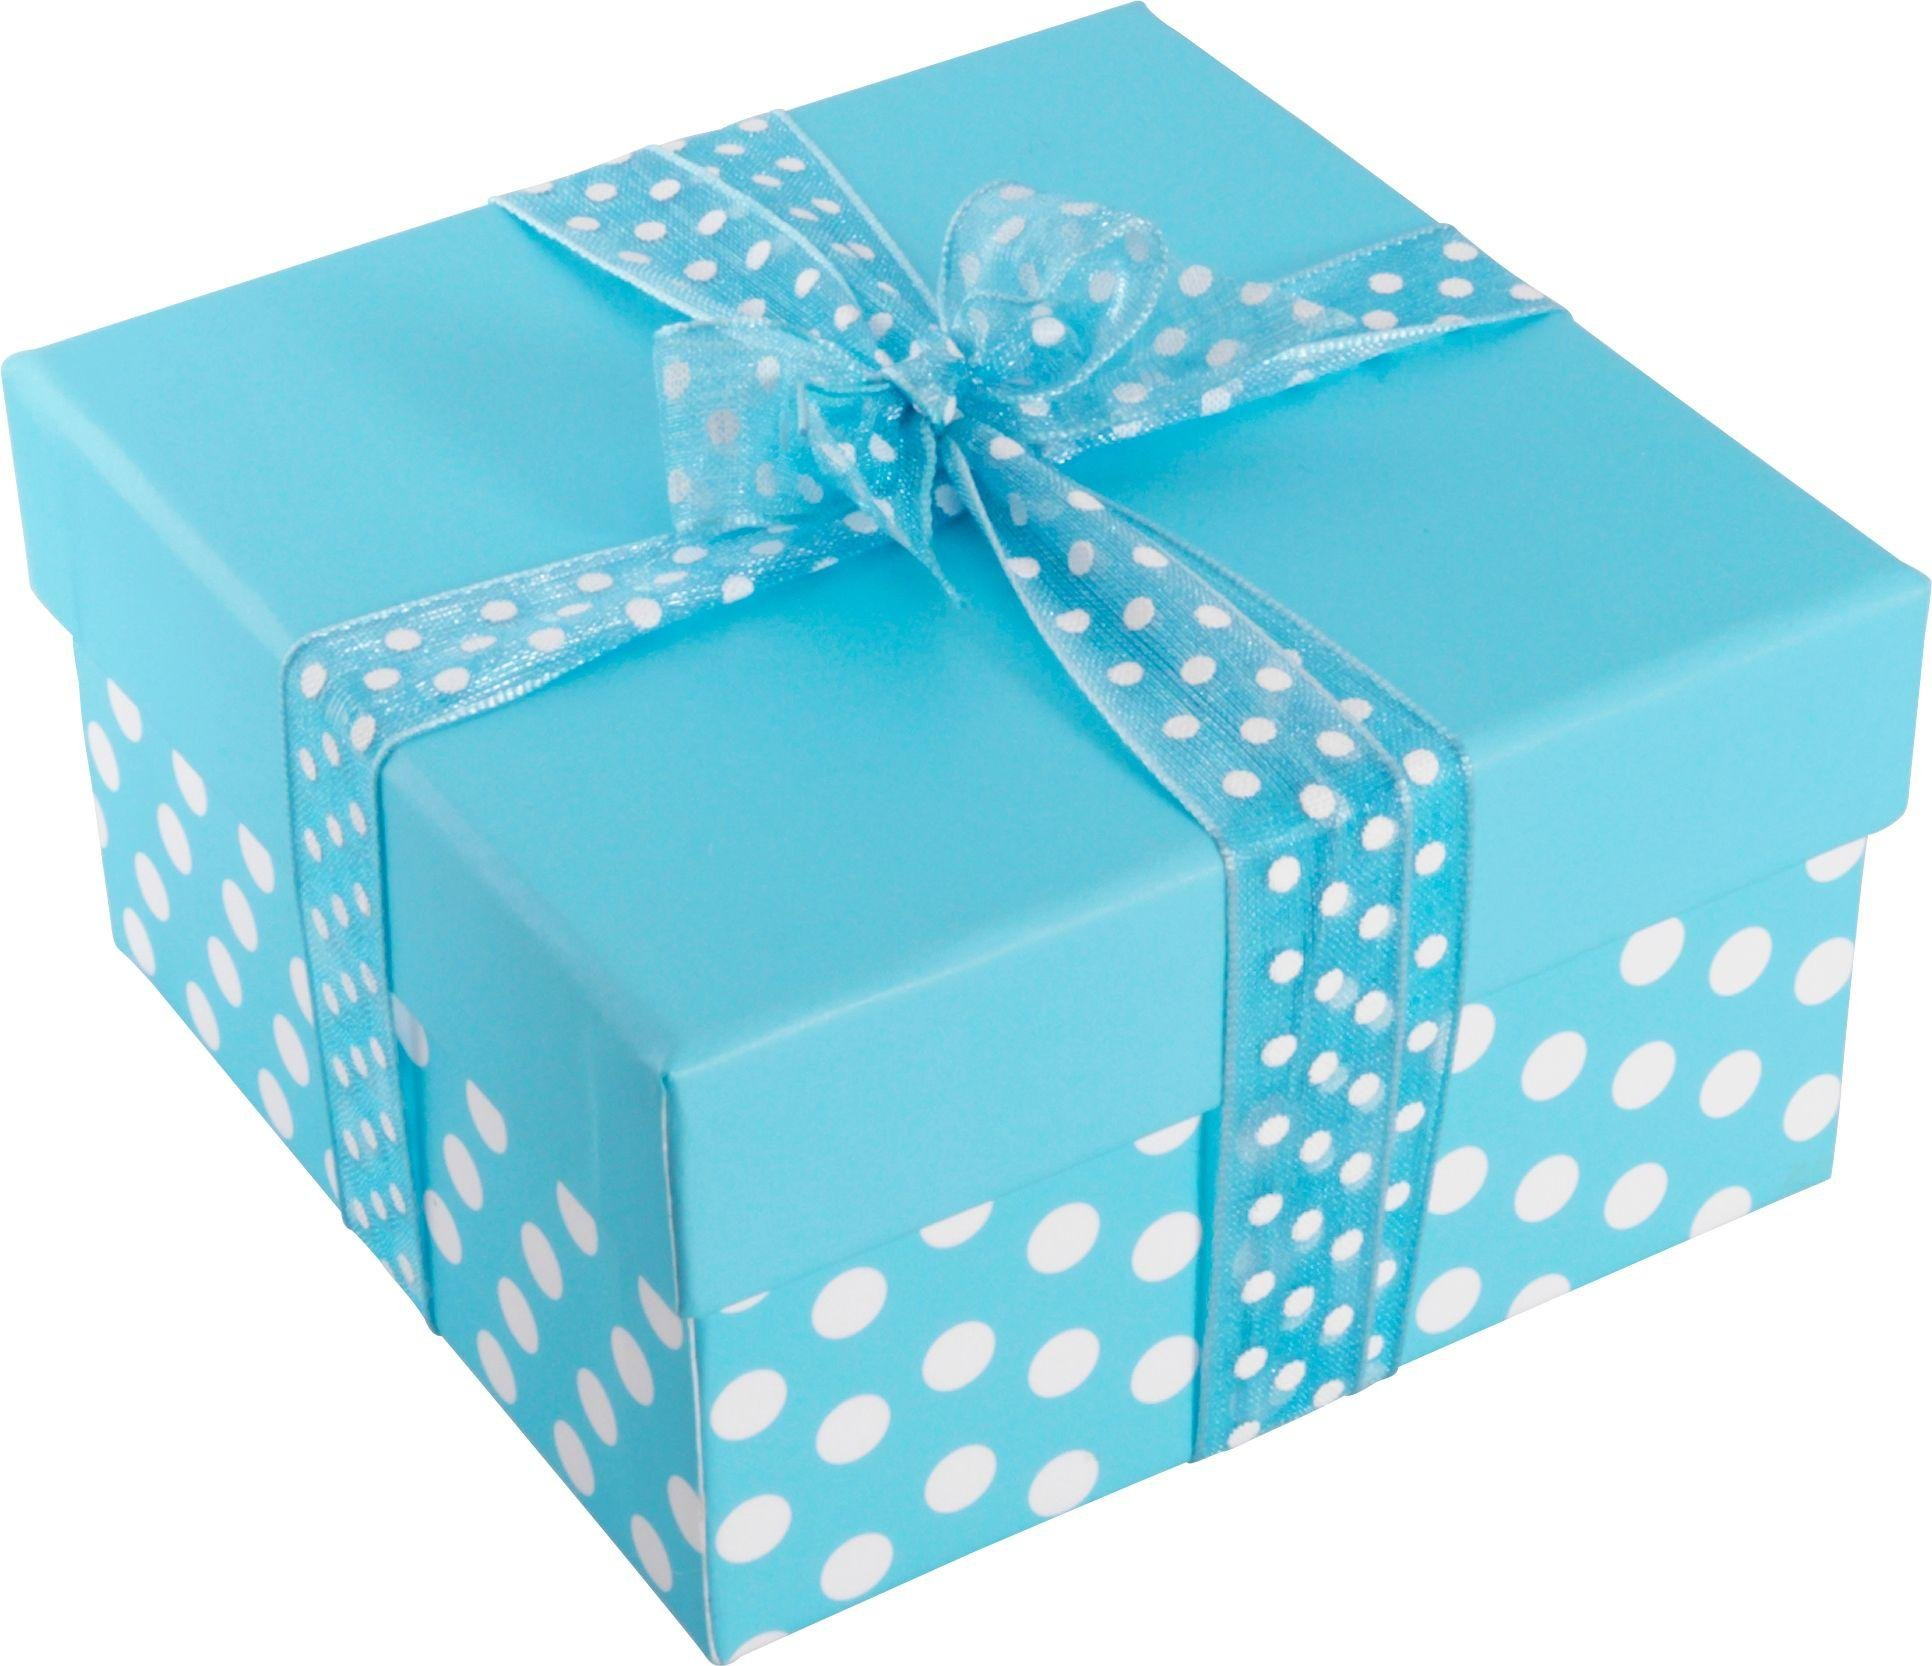 Image of Argos - Children's - Jewellery Box - Blue